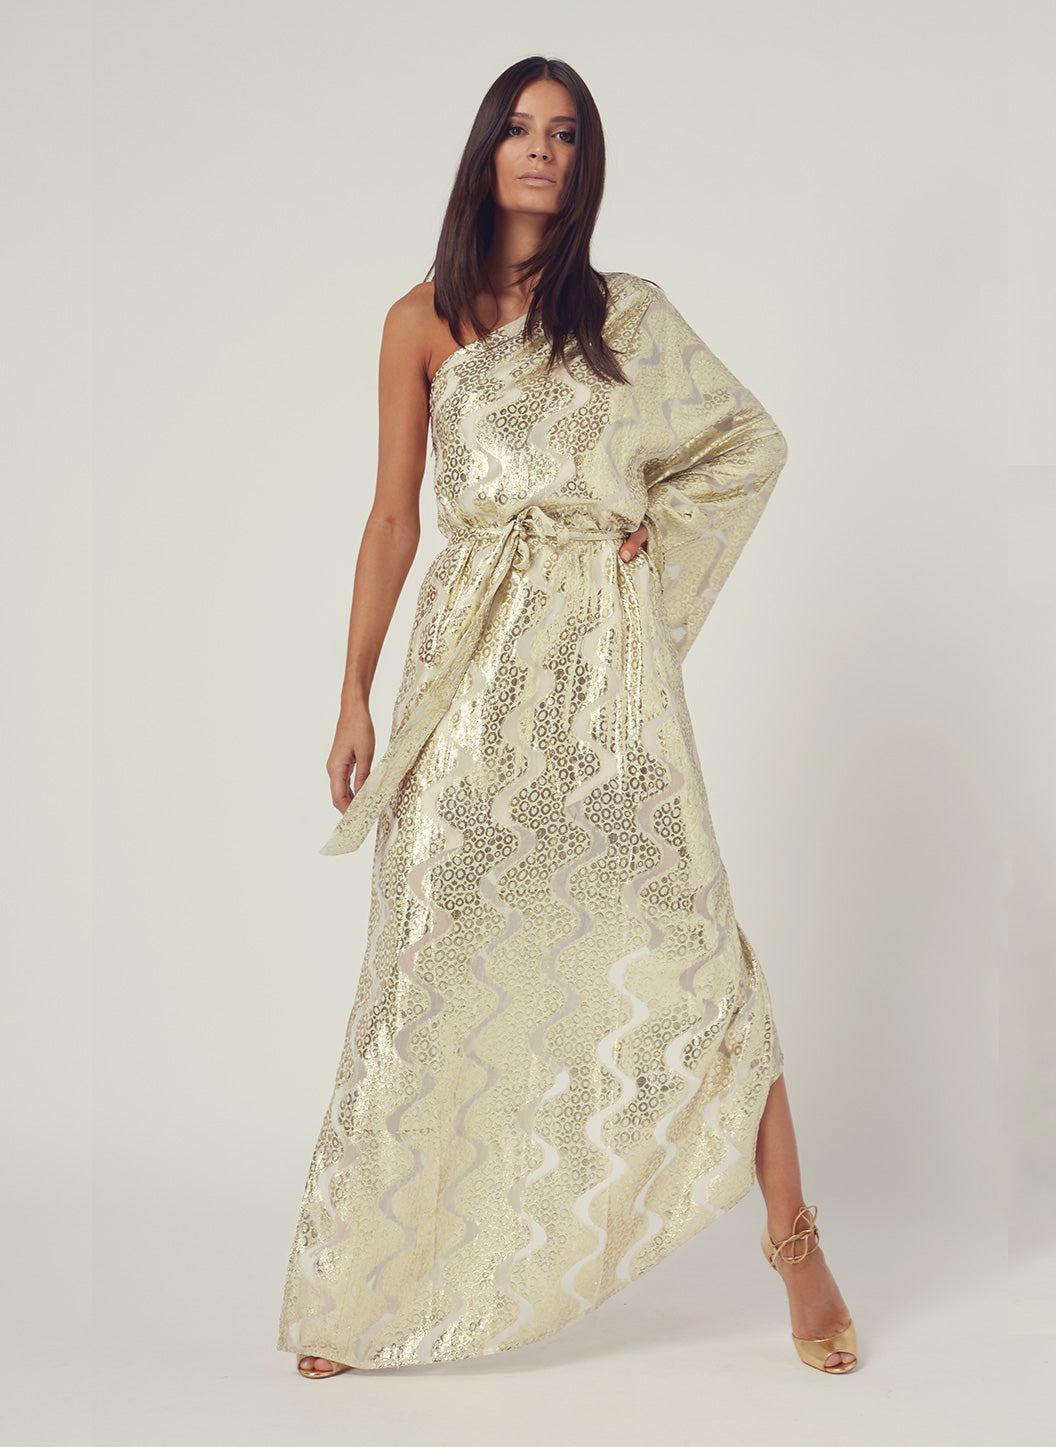 Look 6 One Sleeve Belted Maxi Dress Gold Shimmer - Melissa Odabash Anniversary Collection